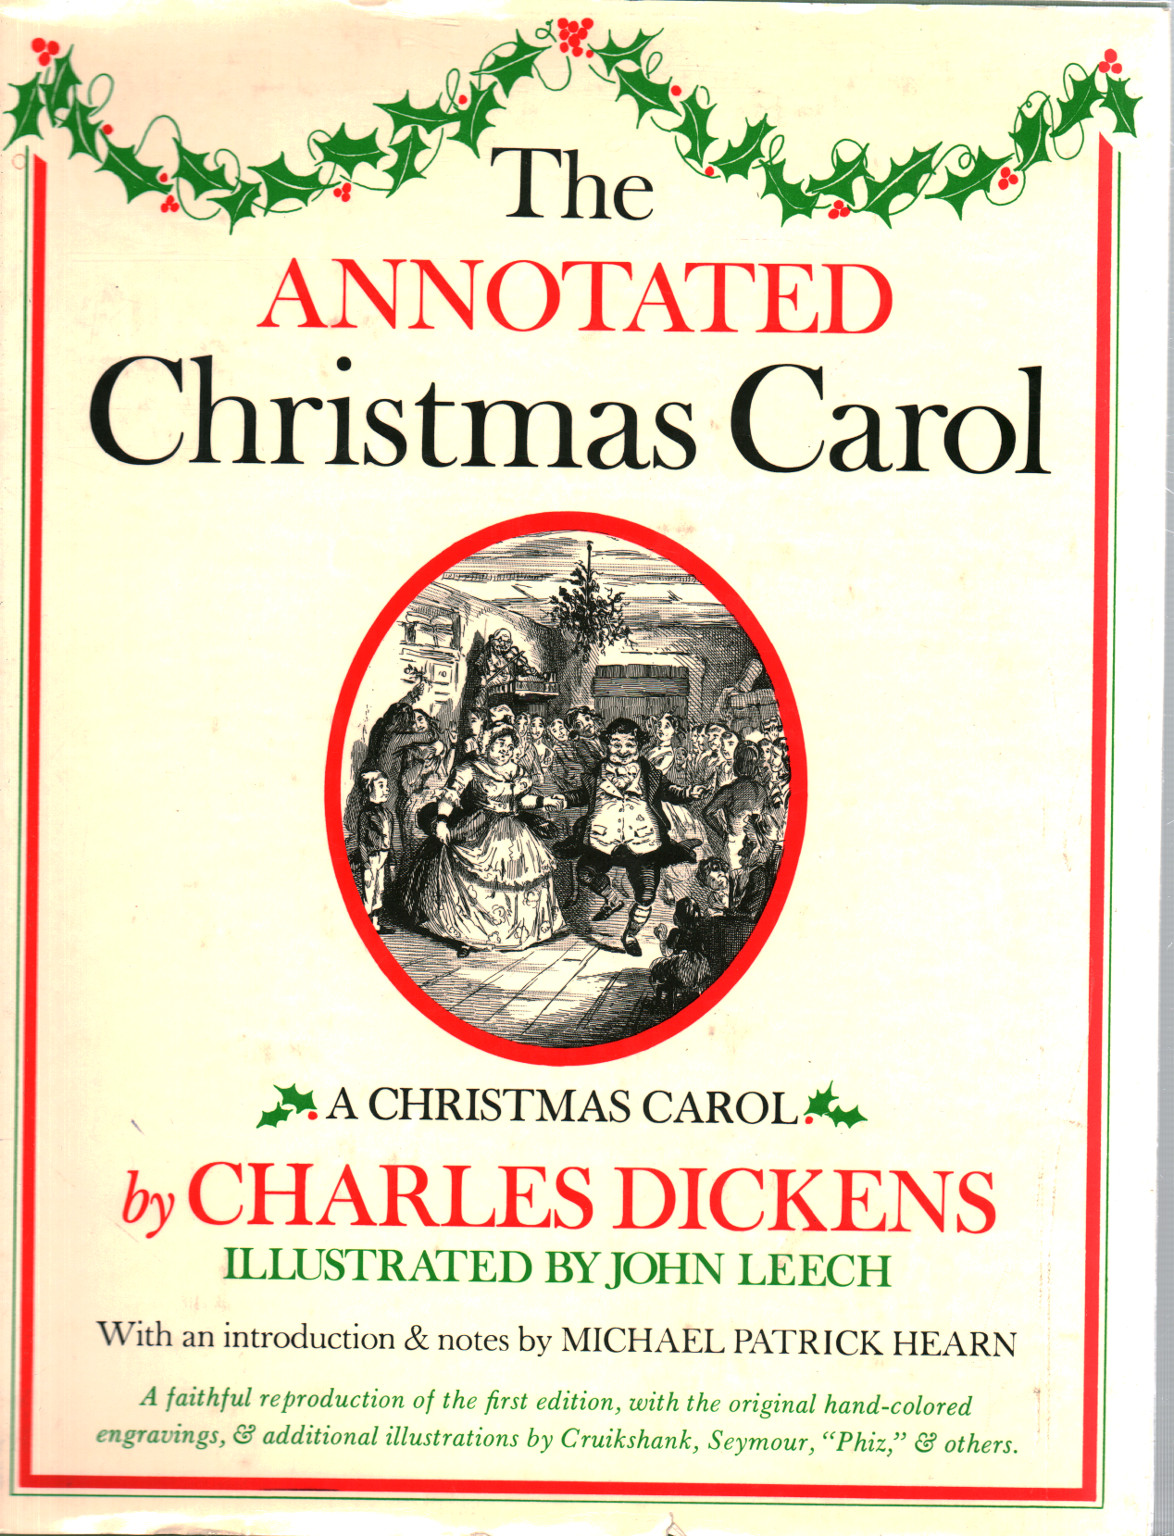 The Annotated Christmas Carol, s.a.